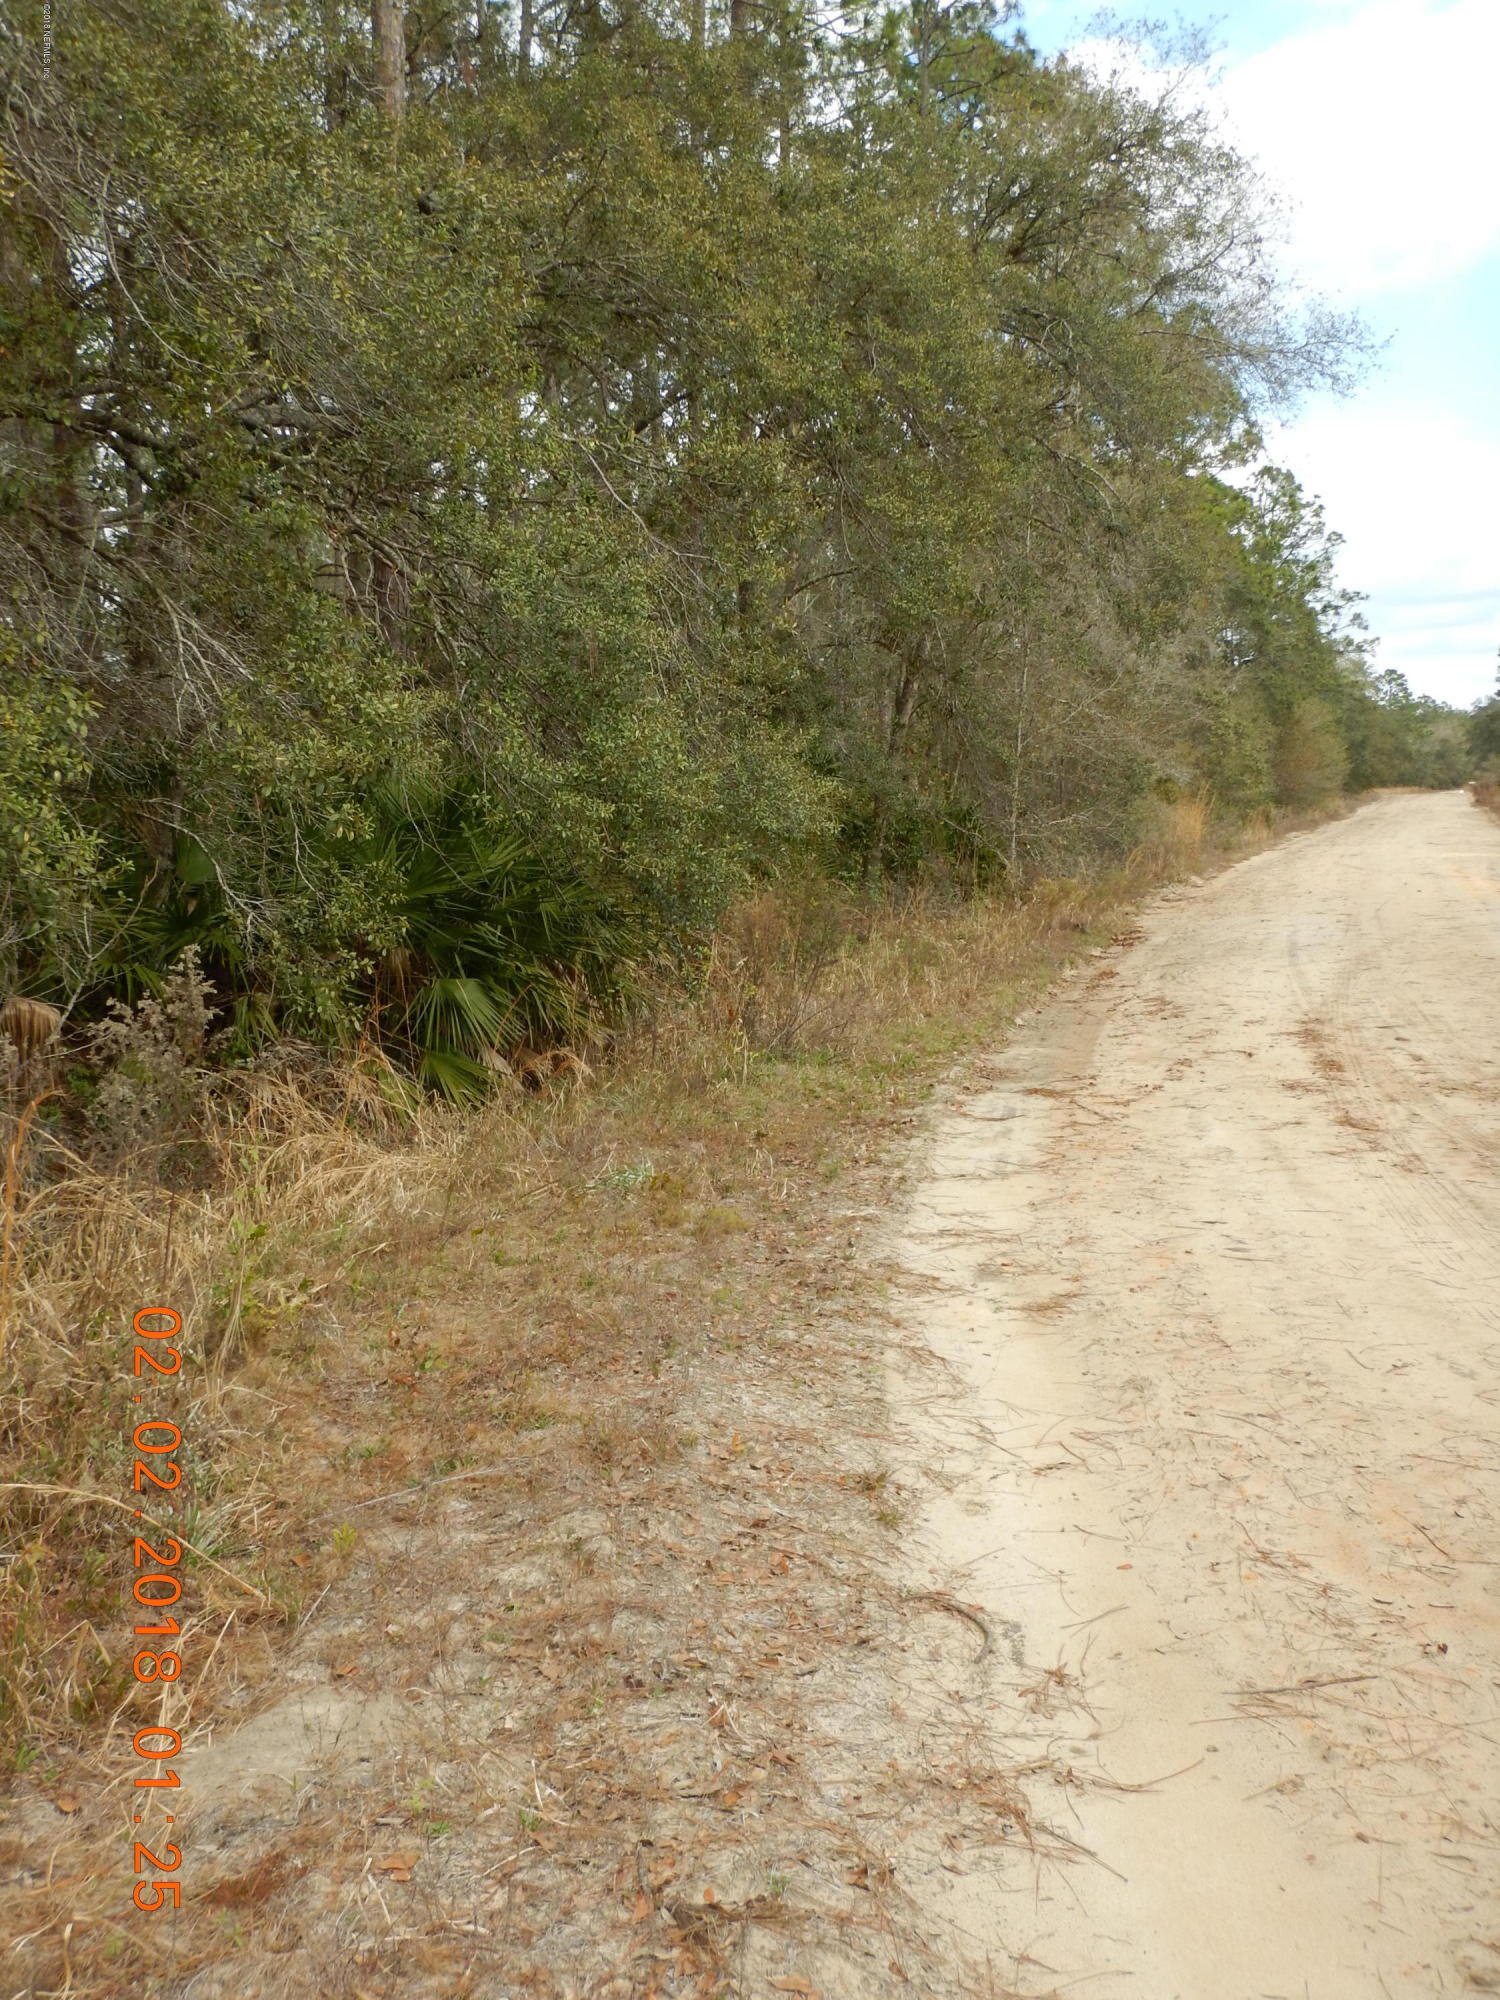 0 CLAY, INTERLACHEN, FLORIDA 32148, ,Vacant land,For sale,CLAY,919478